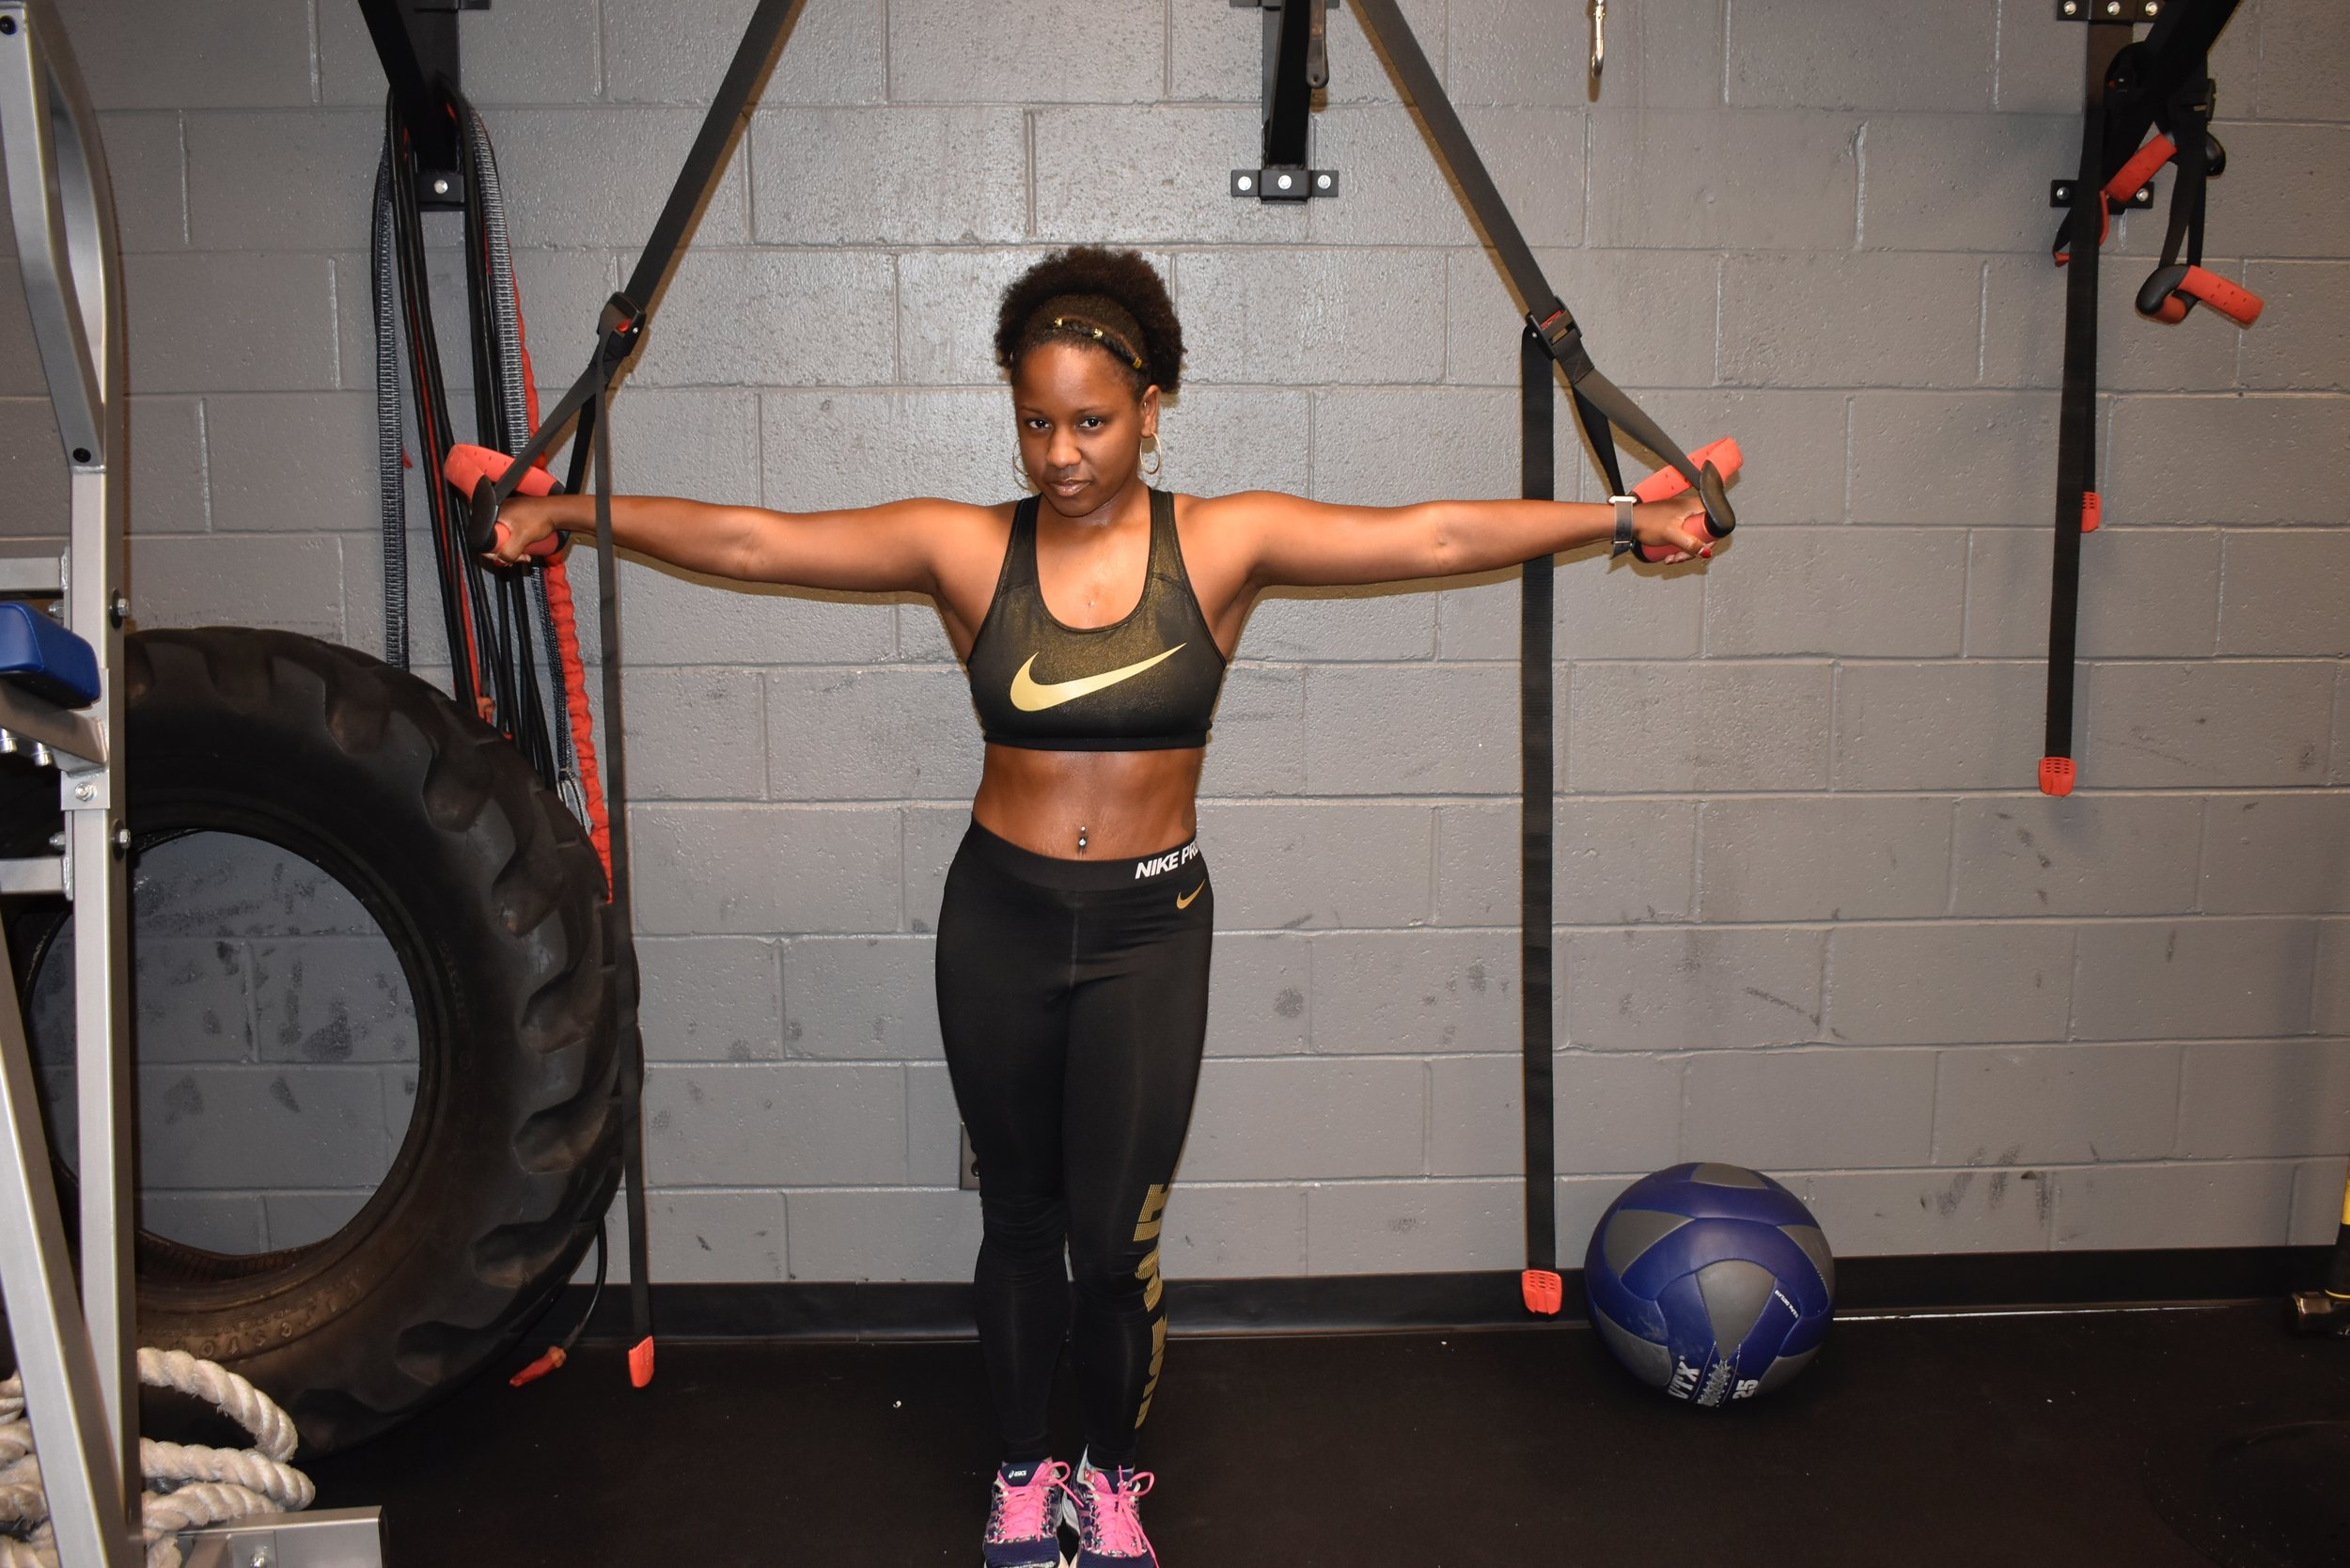 - Join Shante on a journey to get your body defined and sculpted. She offers private sessions, group classes or private group sessions for your corporate offices, schools, sports teams, friend meet ups, etc. Combination training introduces dynamic sequences that flow while burning calories at the same time. Shante will make sure you are using the proper technique and form throughout your workout session to prevent injuries. SAFETY FIRST!! Benefits of the combination class is burning that excess fat that we all want to shed, it is easy on the joints (no jumping), it is a low impact yet very effective training class, available for all workout levels (beginners to advanced), easy to follow, improving flexibility and agility while creating strong muscles.